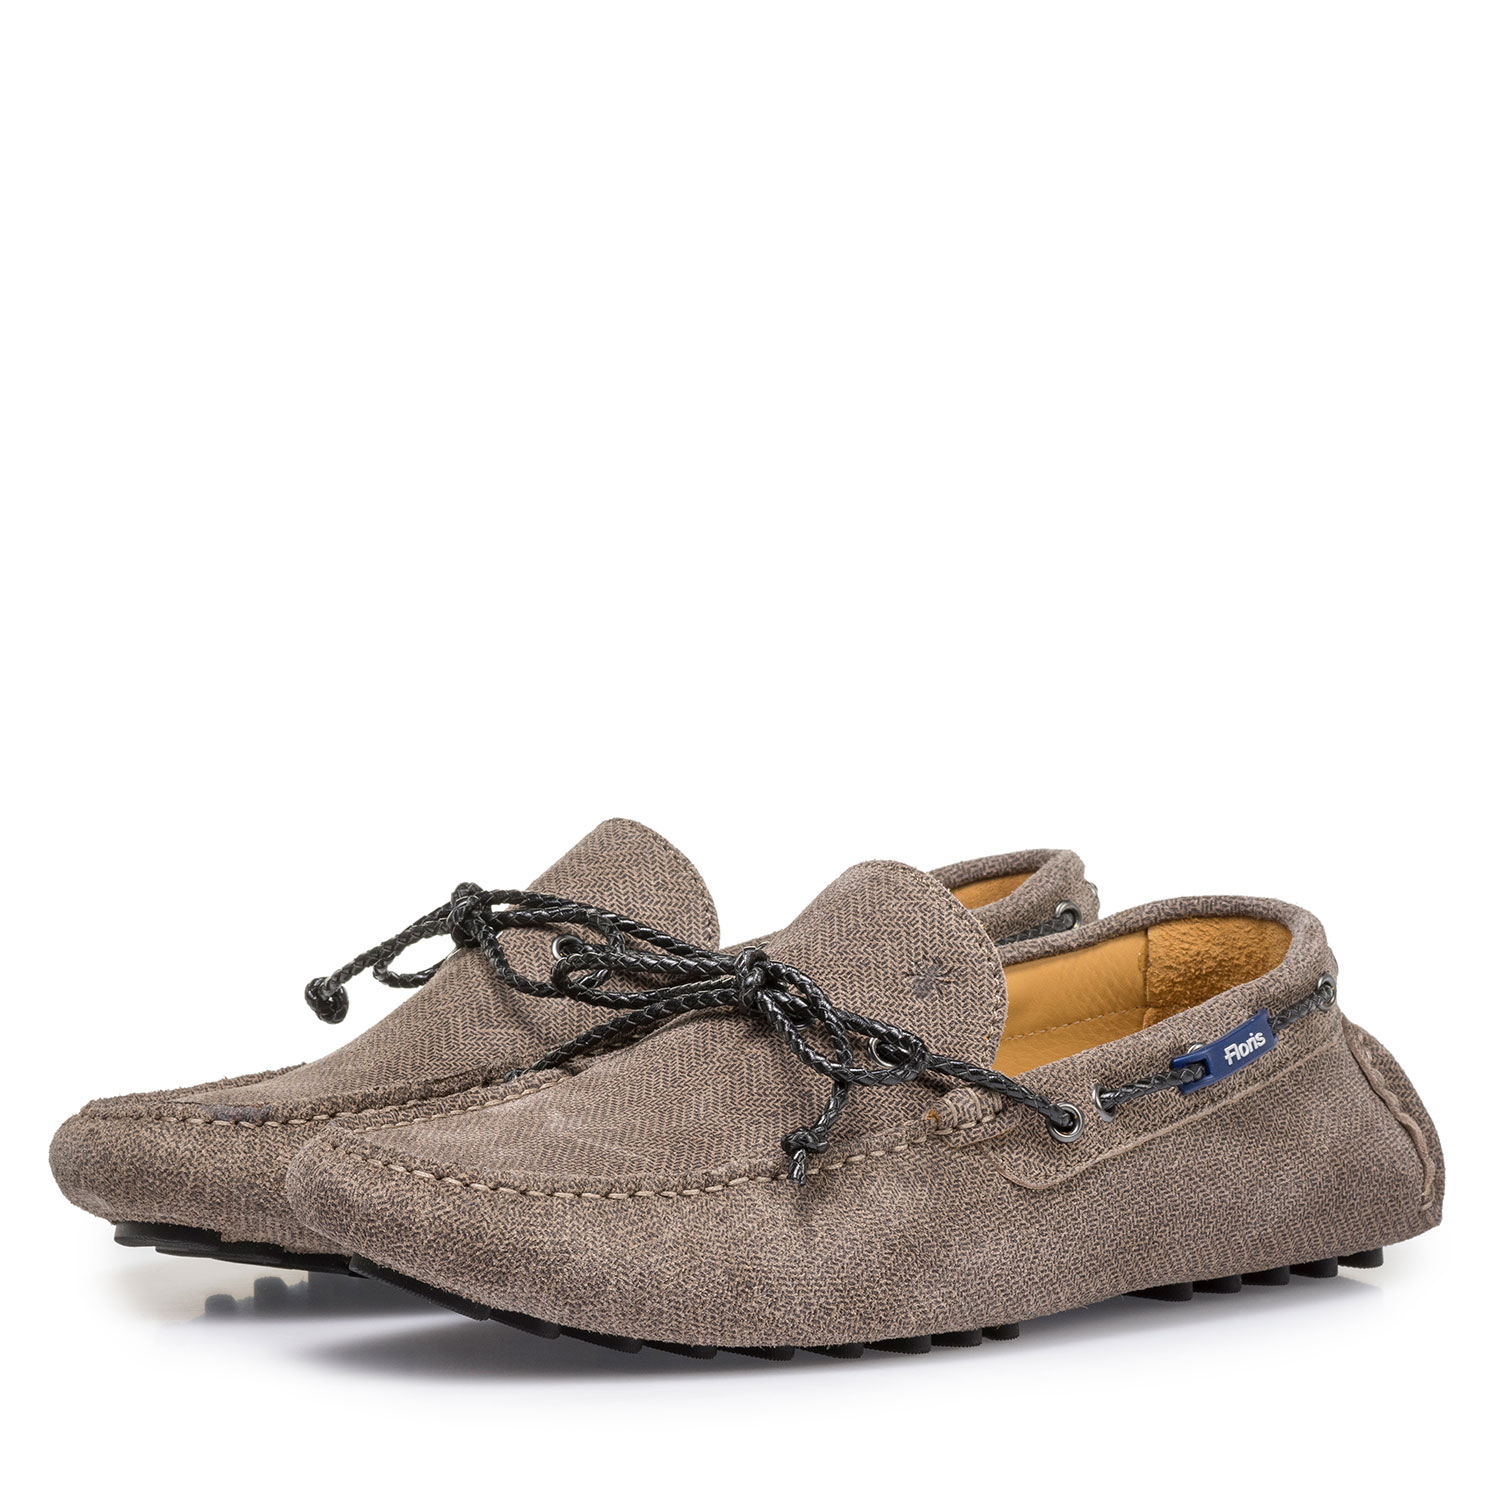 15214/09 - Sand-coloured suede leather moccasin with print